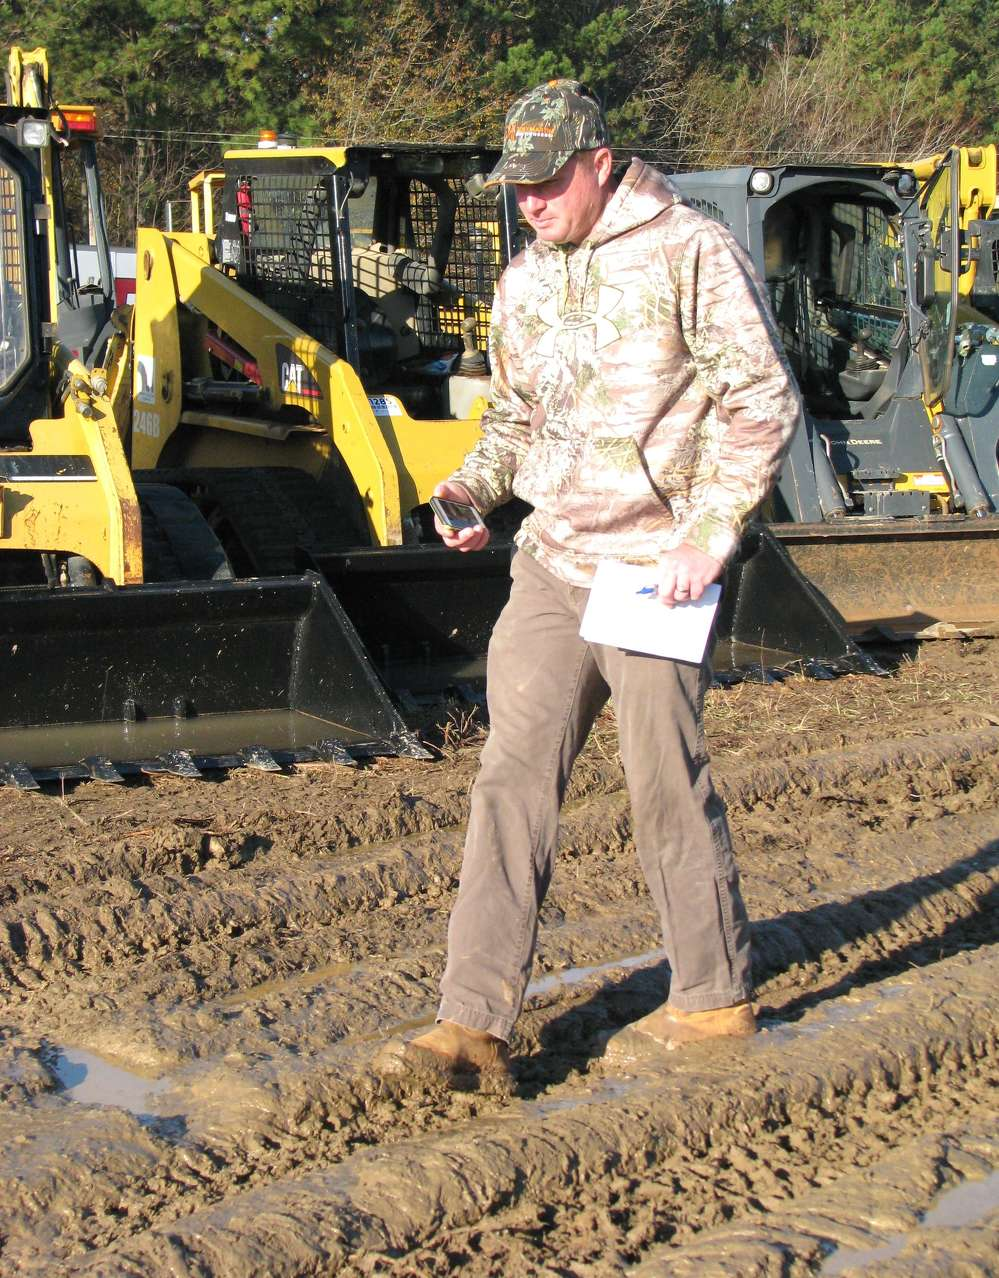 After weeks of dry weather in the region, Micah Butler,  local Carrollton, Ga., contractor, was unfazed by the muddy conditions from the recent rain.